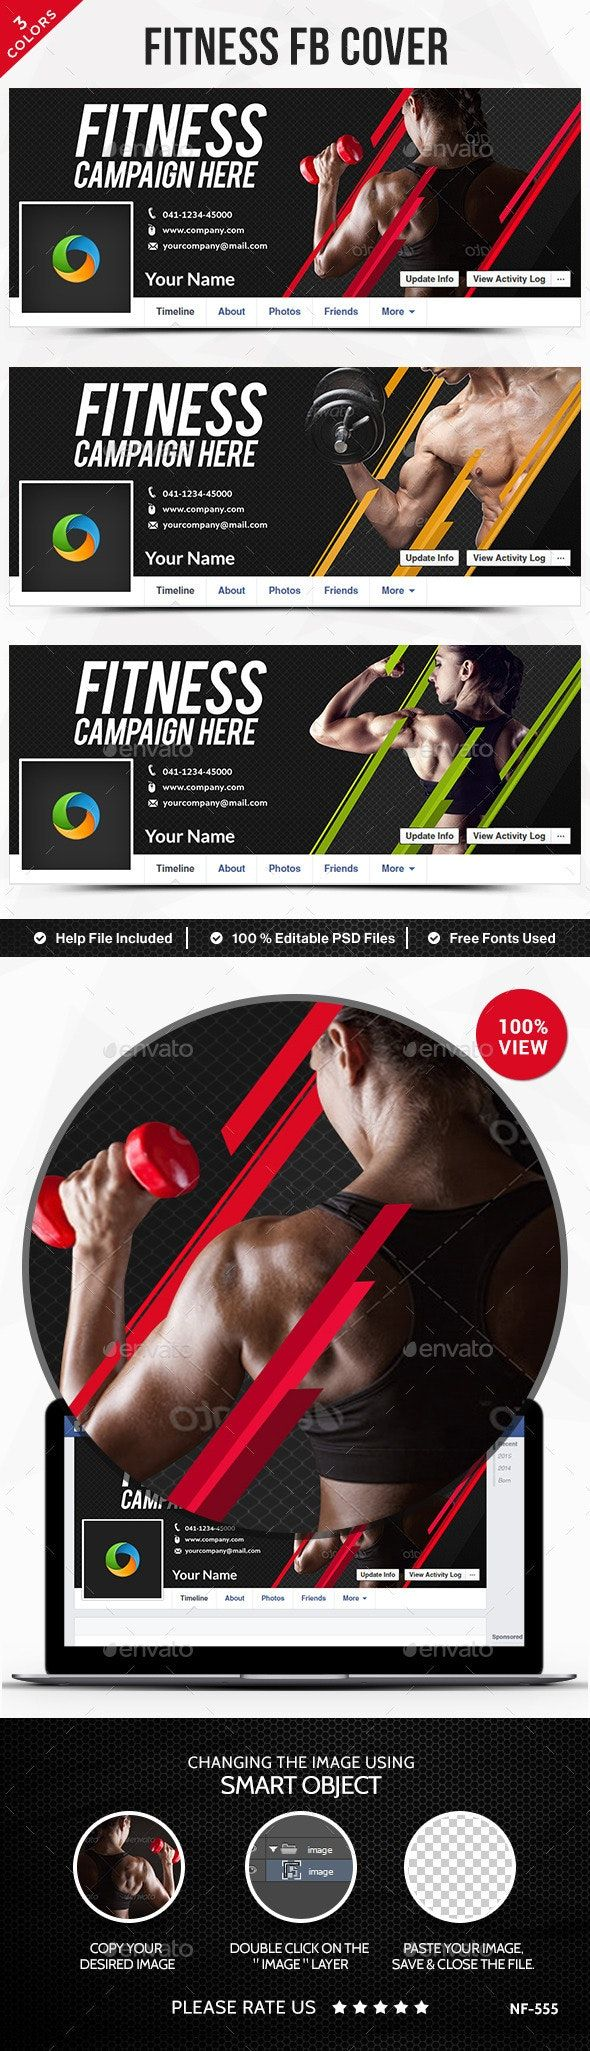 Fitness Facebook Covers - 3 Color Variations #Affiliate #Facebook, #ad, #Fitness, #Covers, #Variatio...